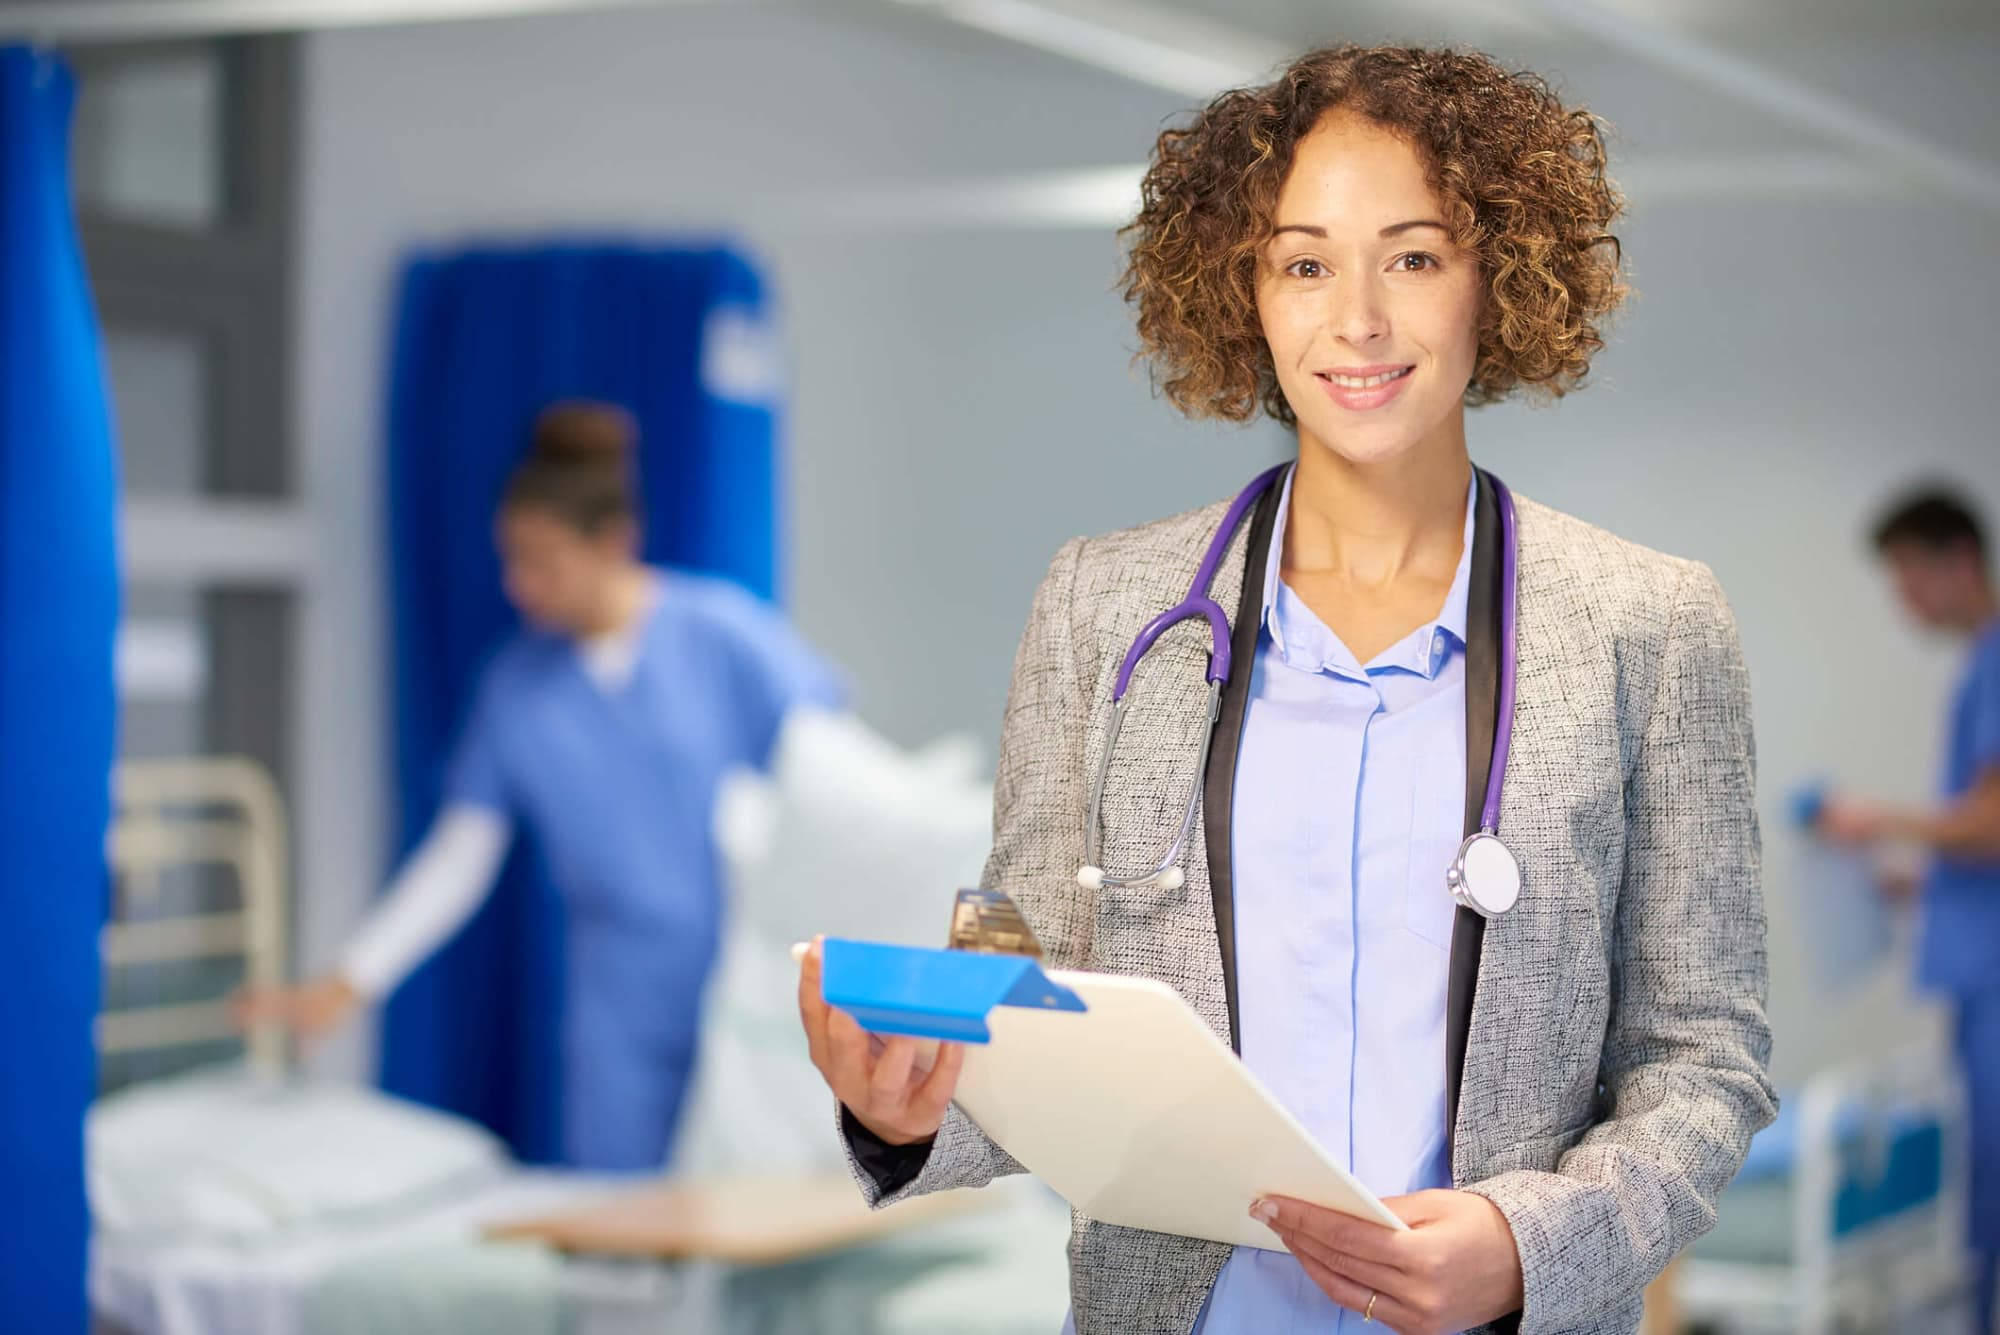 Becoming a Nurse Practitioner vs. a Doctor: What Are the Differences?